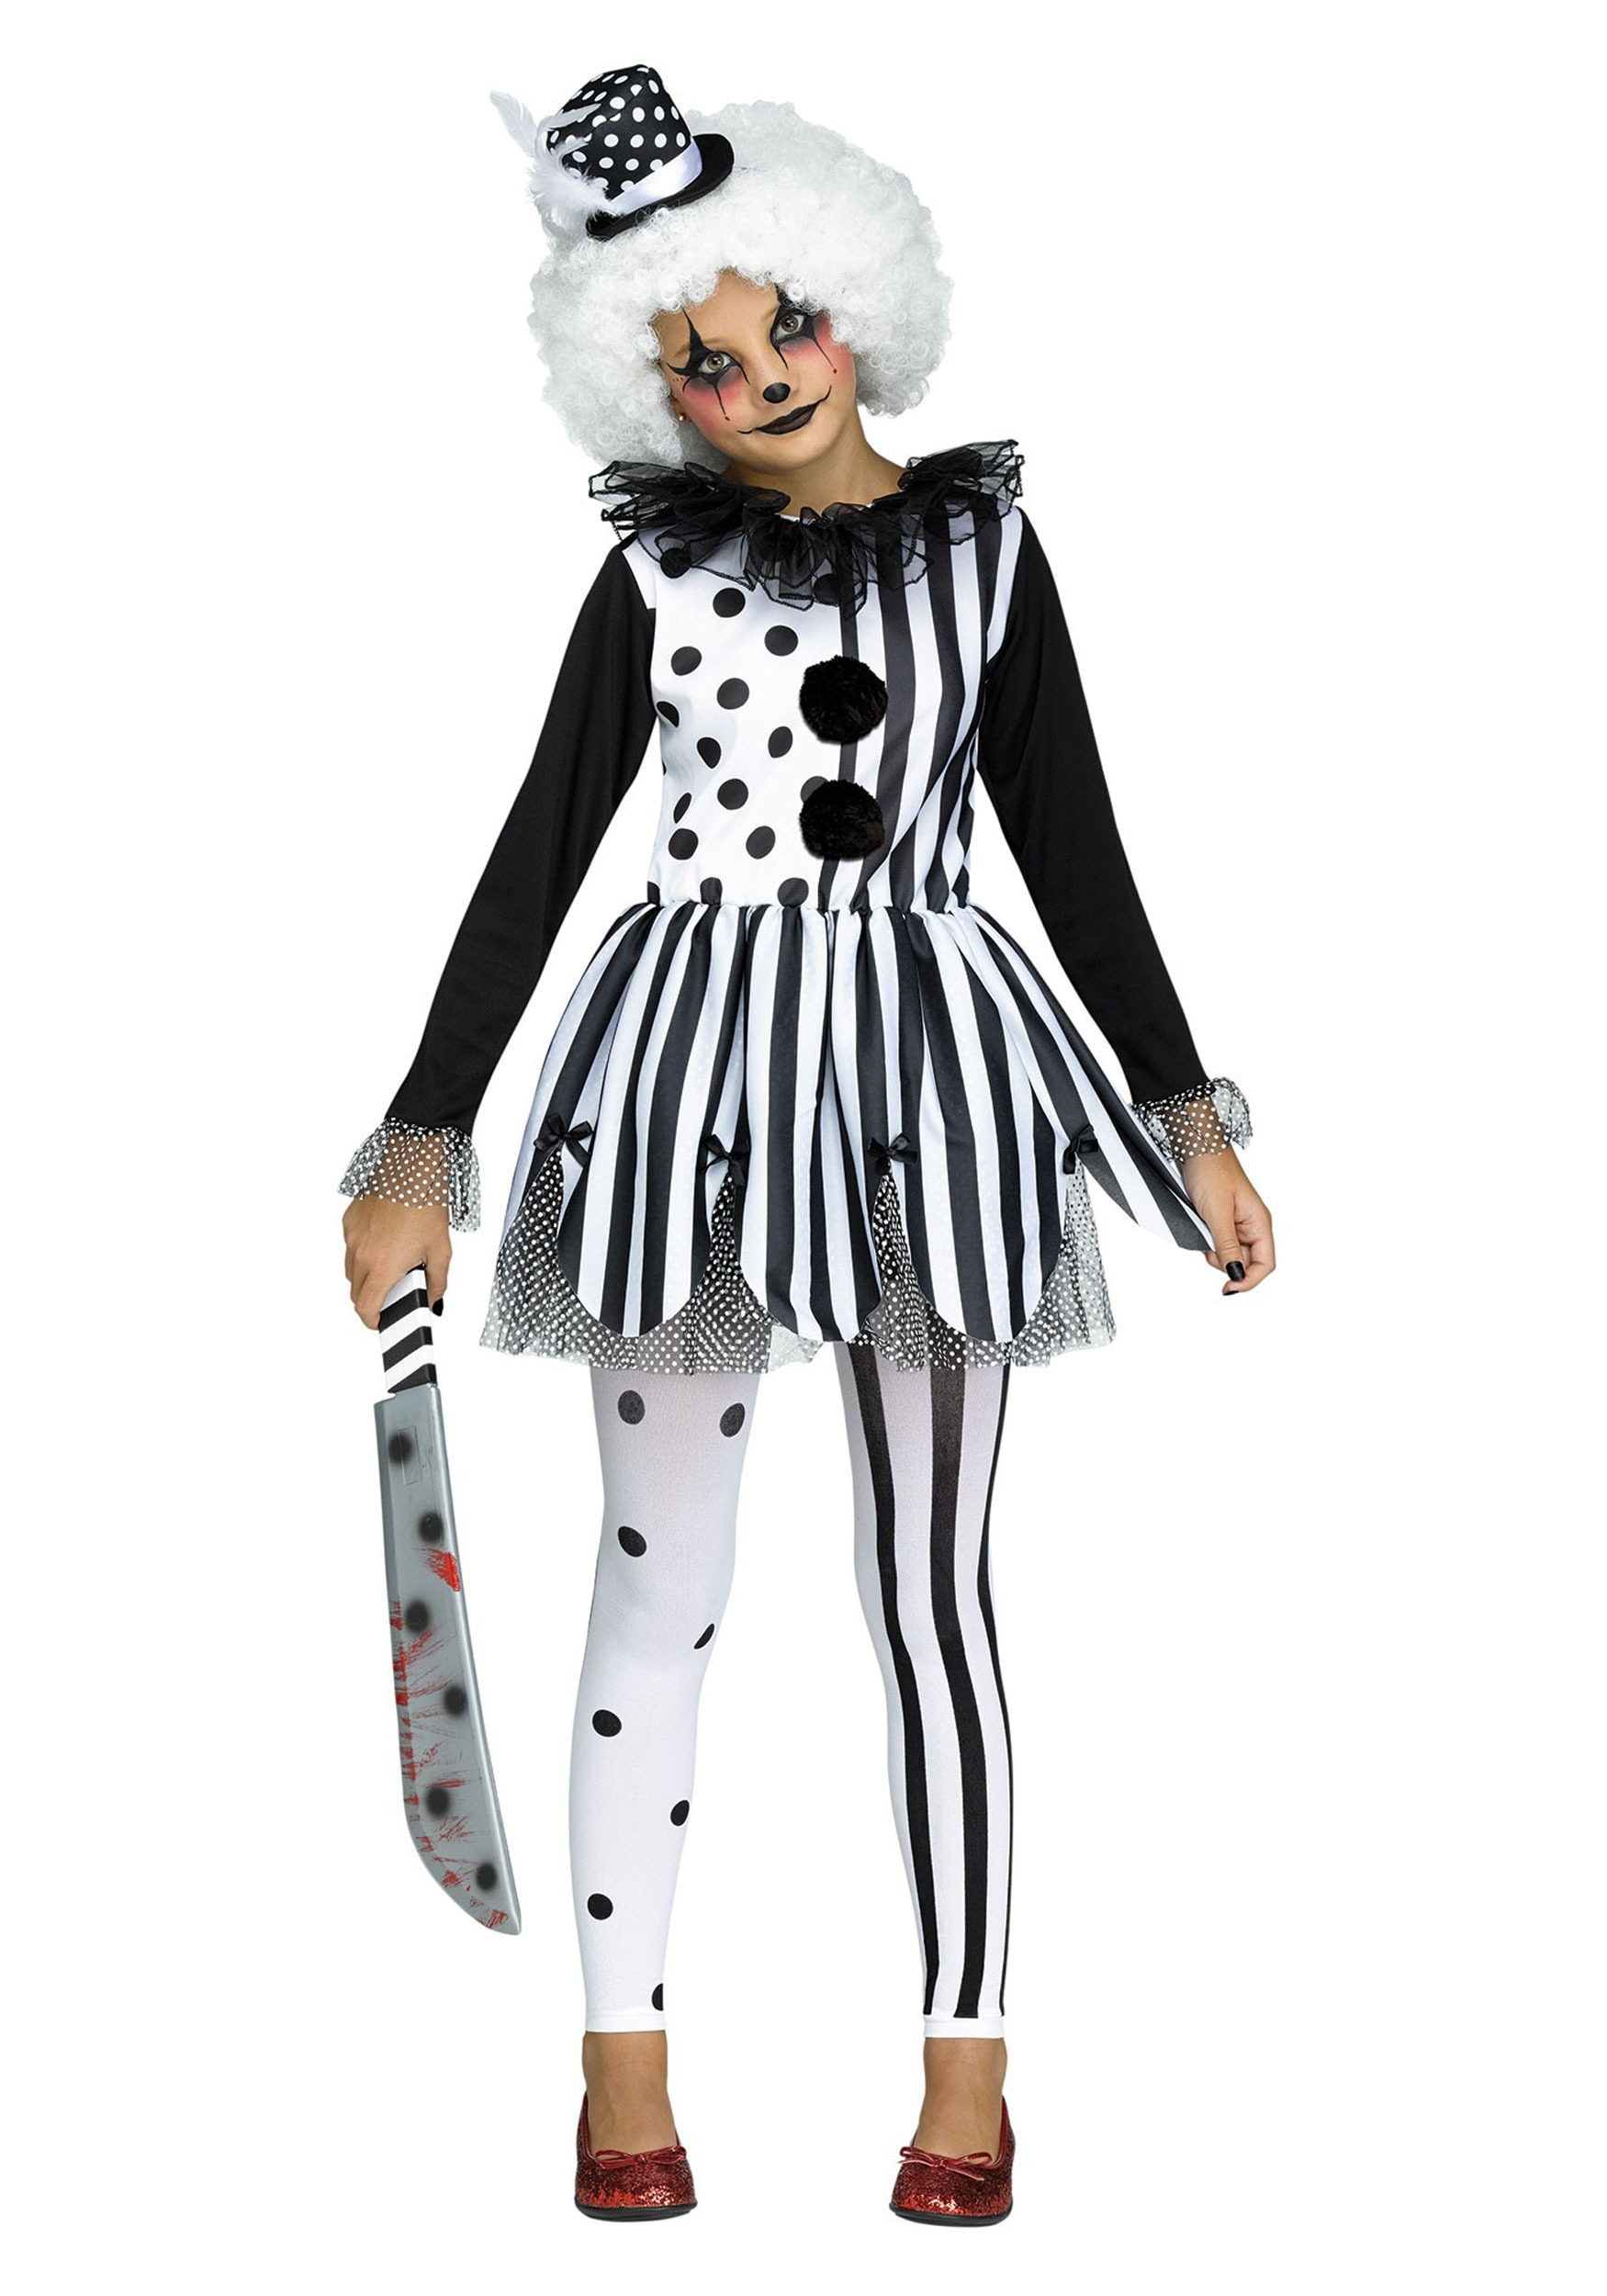 Killer Clown Halloween Costumes For Girls.Killer Clown Girls Costume